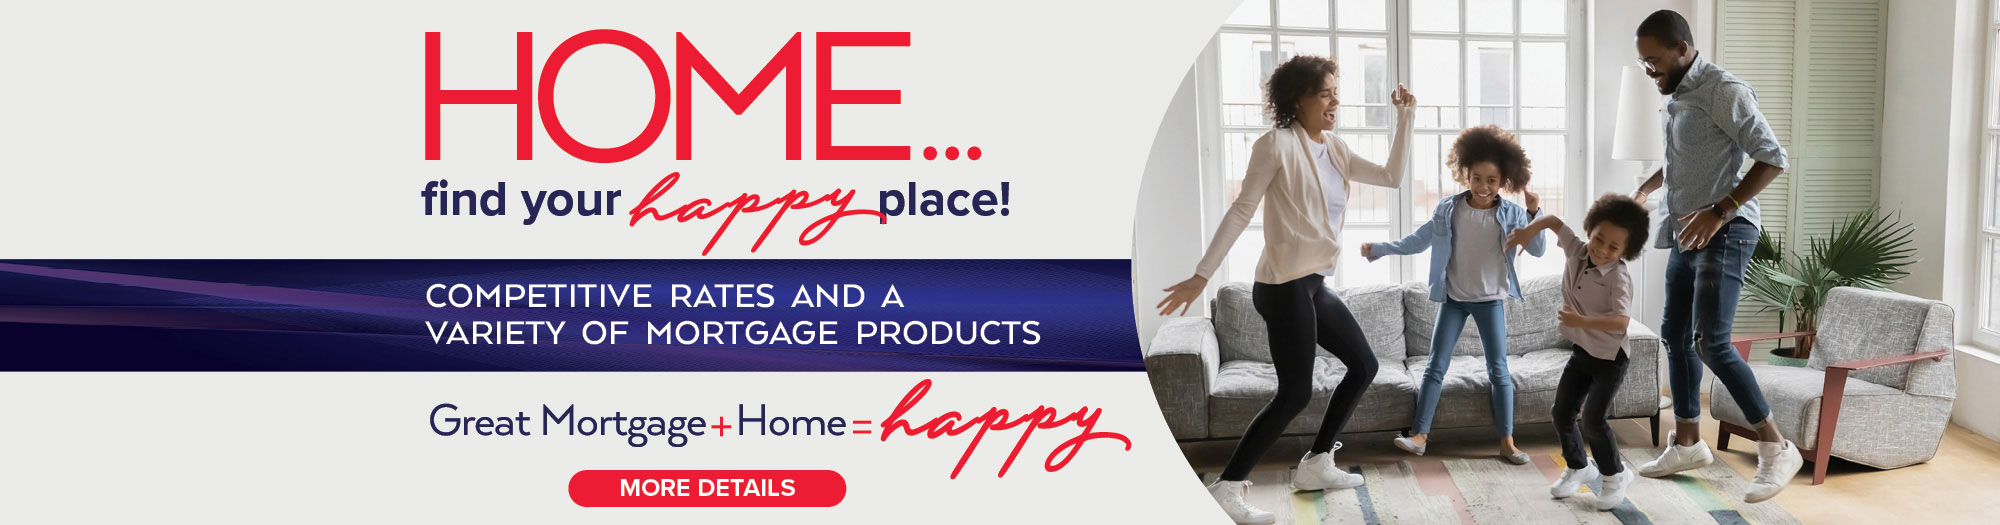 Home. Find your happy place. Competitive rates and a variety of mortgage products